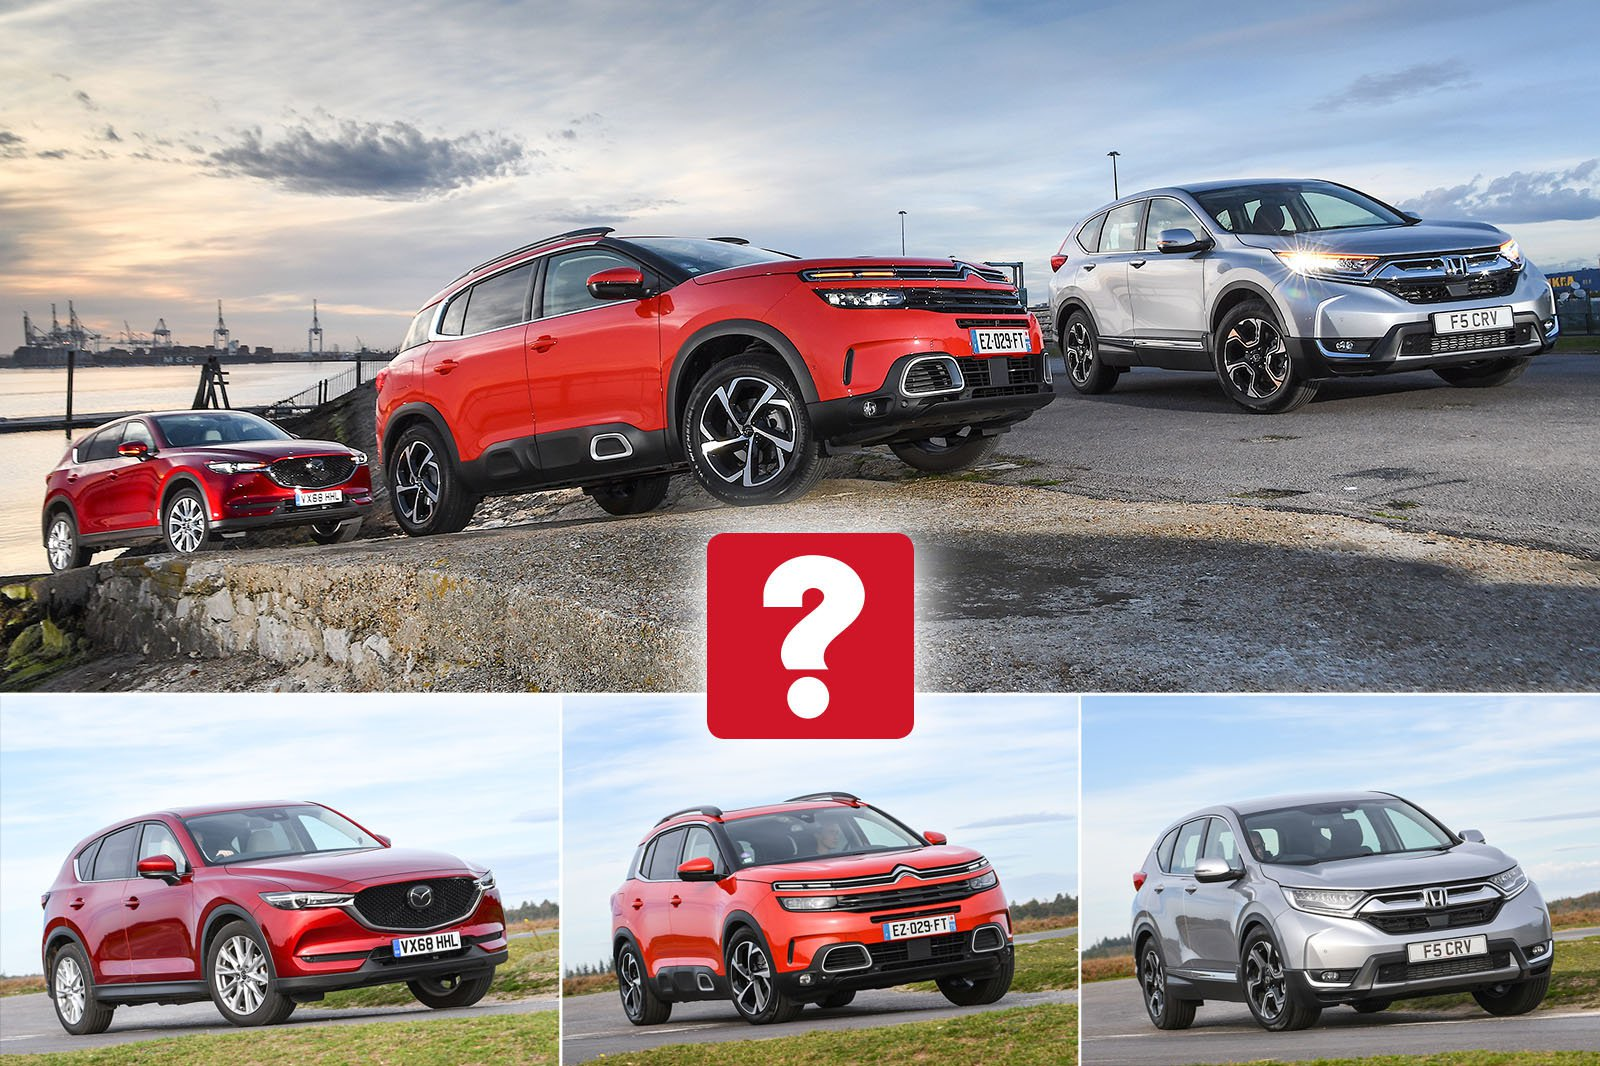 New Citroën C5 Aircross & Honda CR-V vs Mazda CX-5